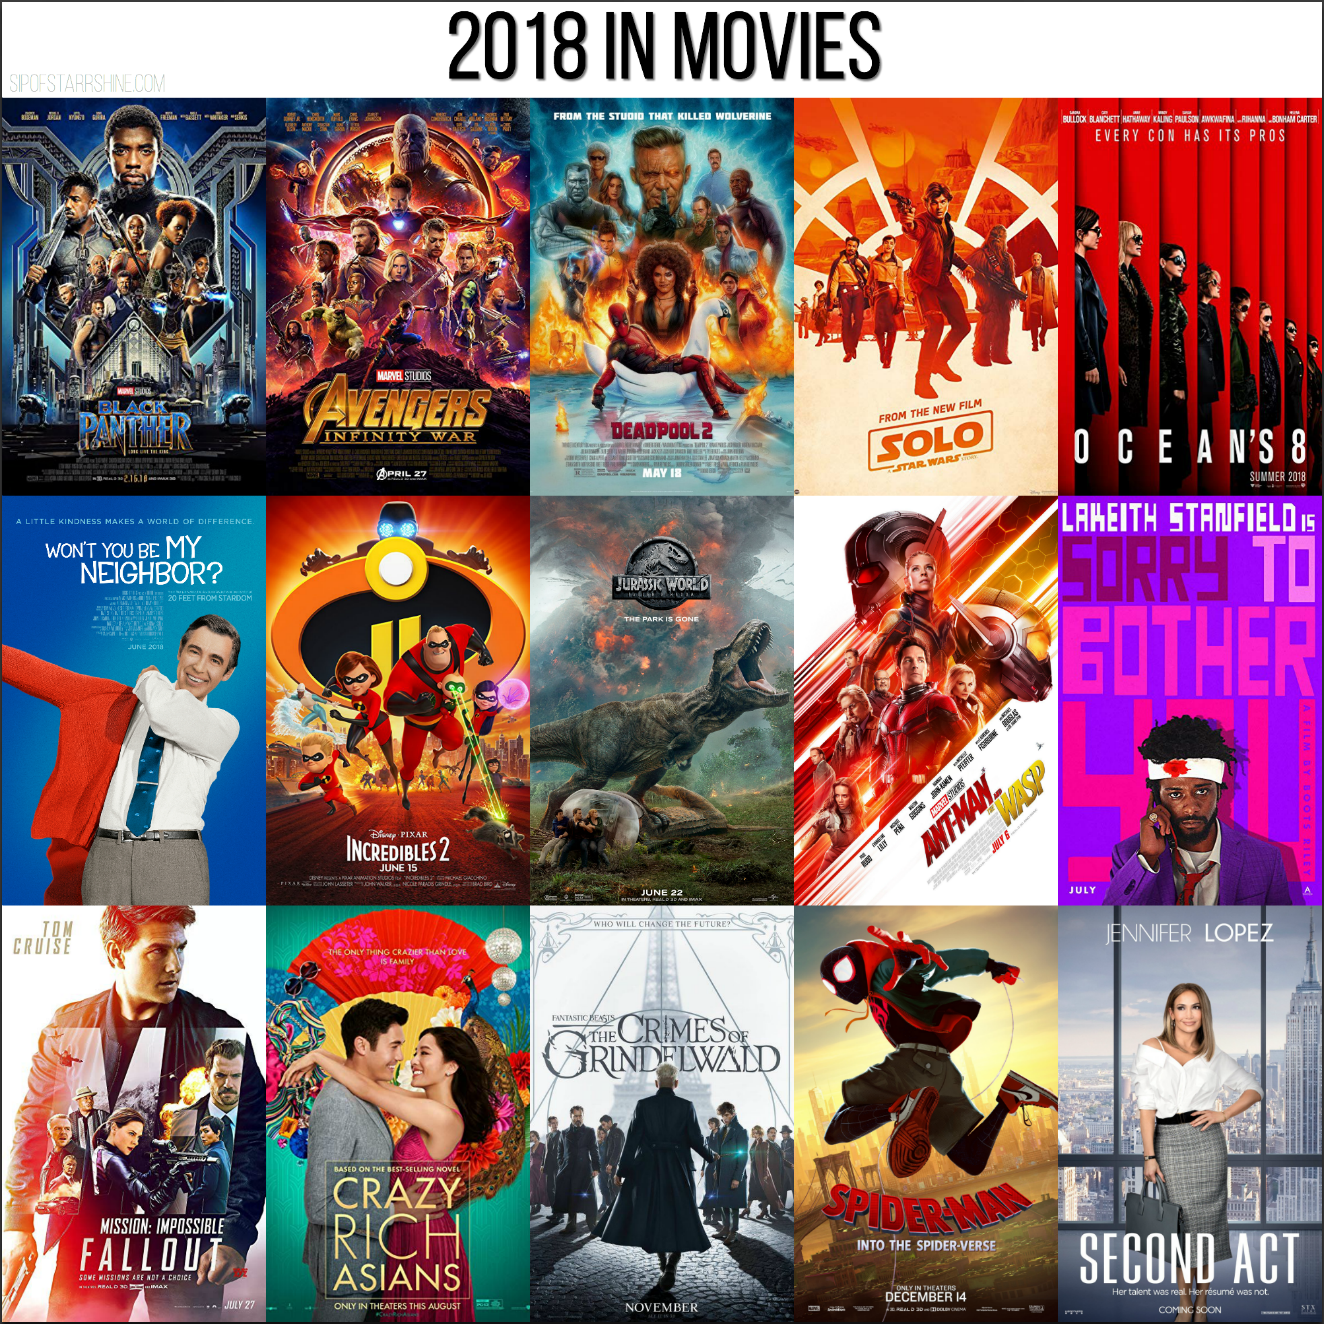 2018 in movies